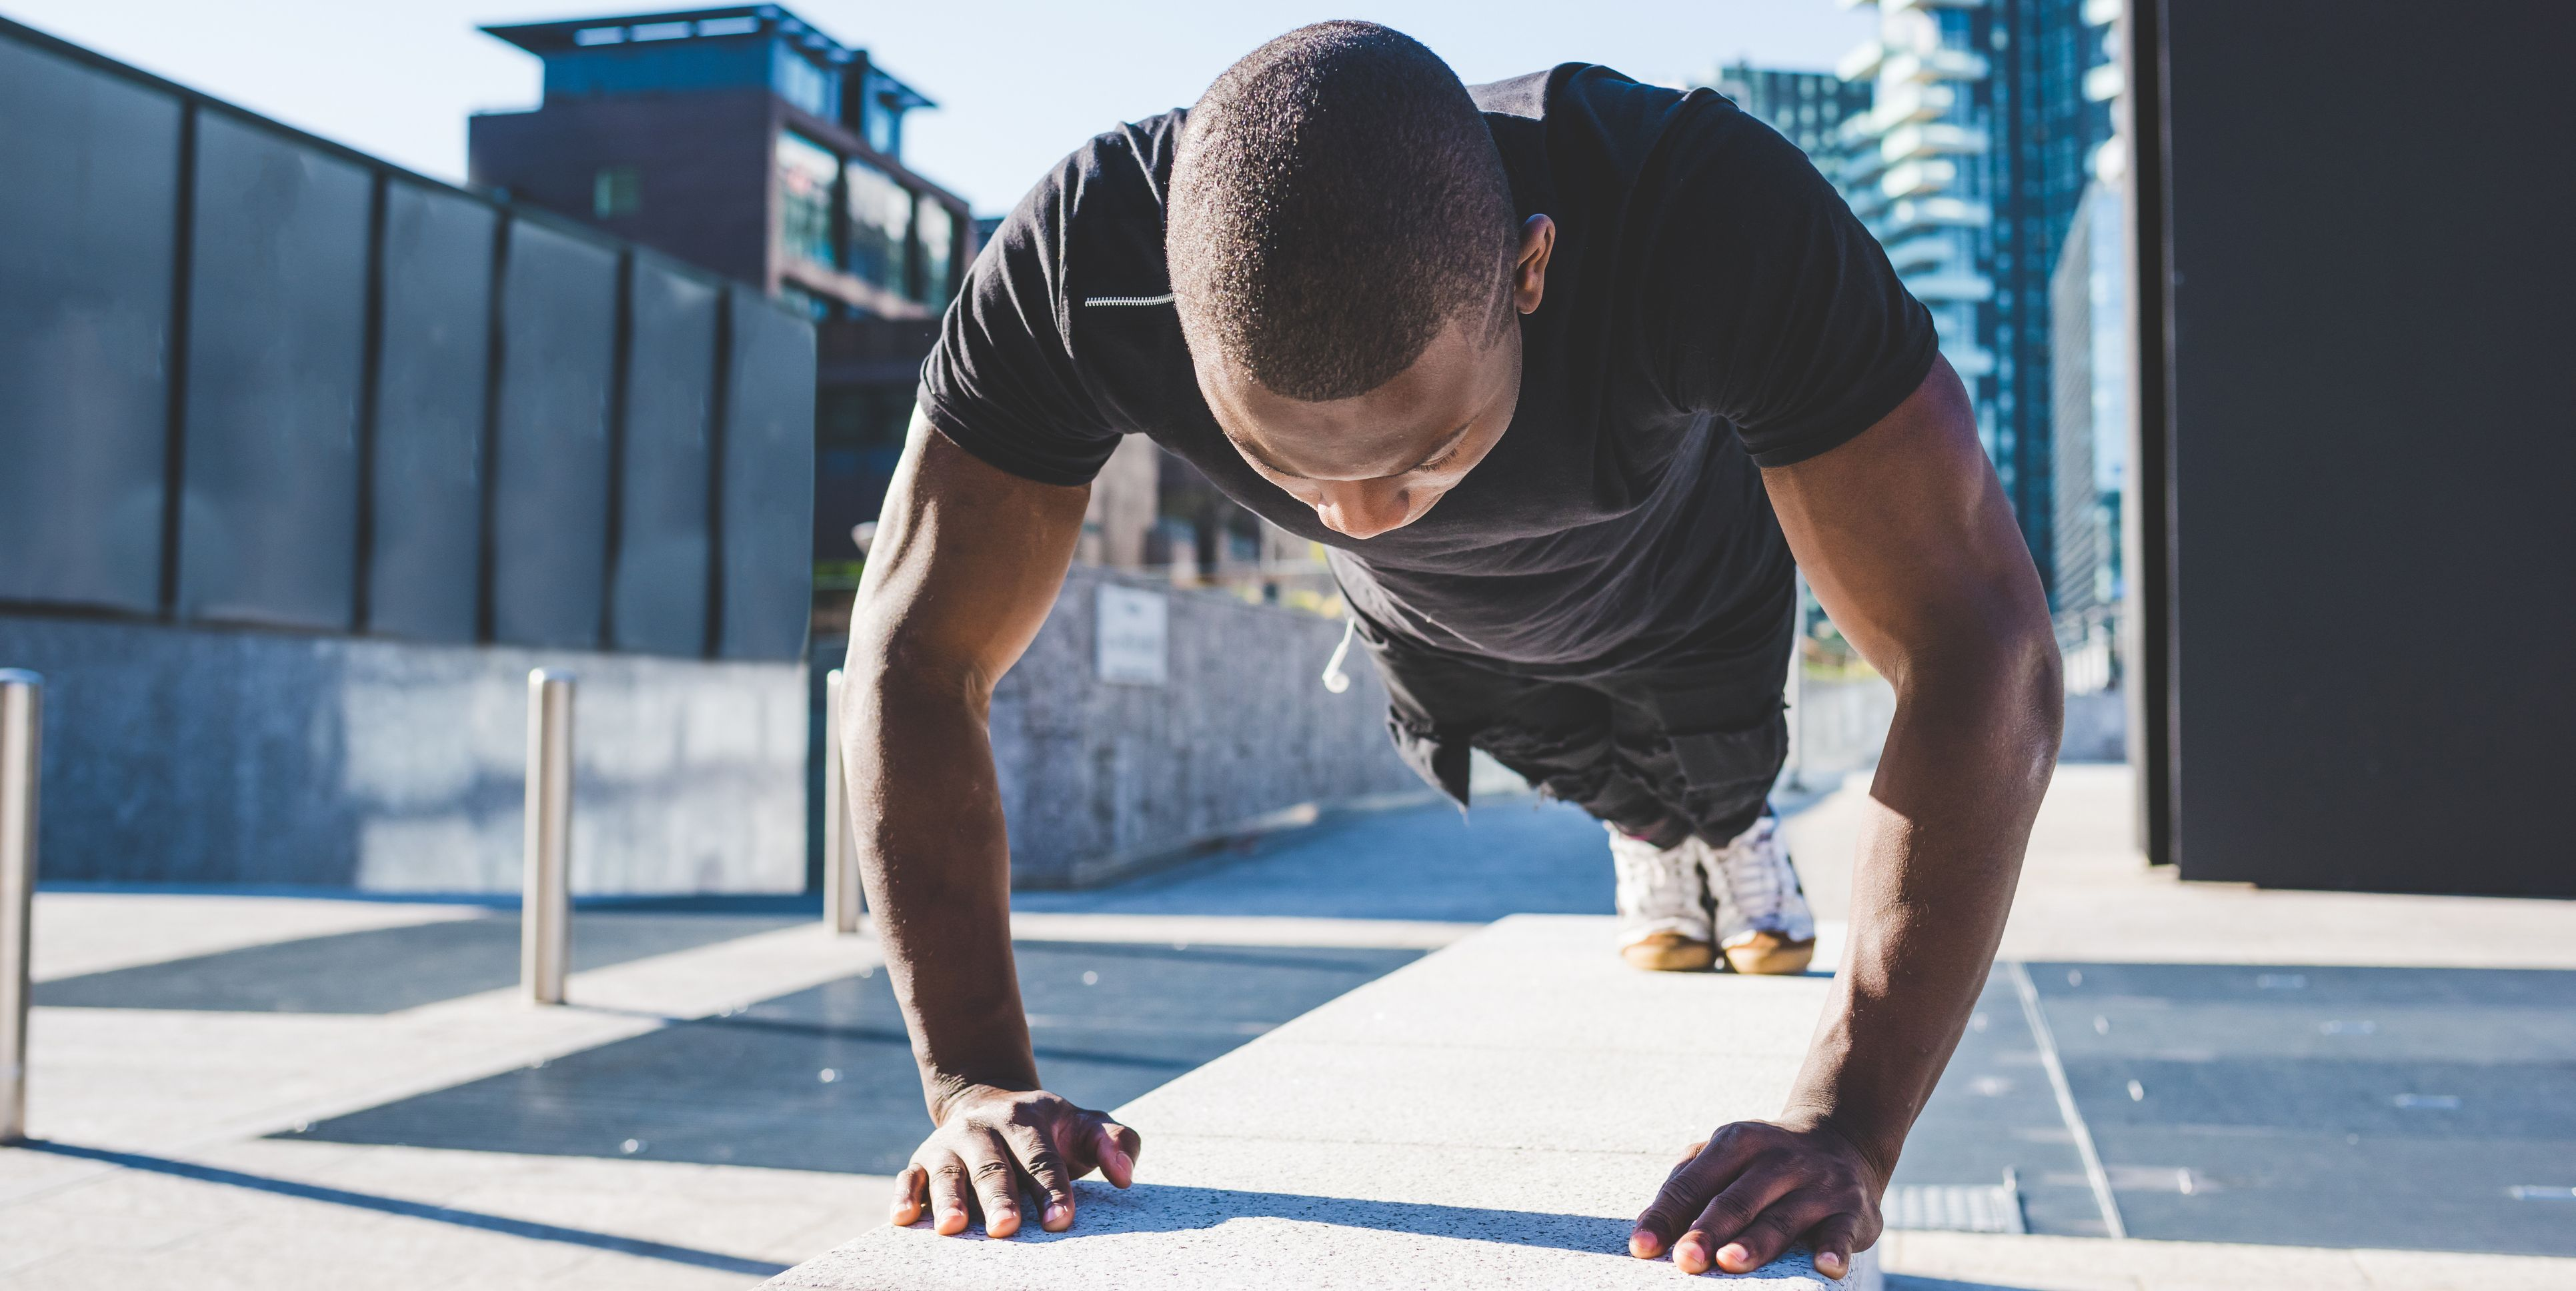 Young man exercising outdoors, doing push-ups